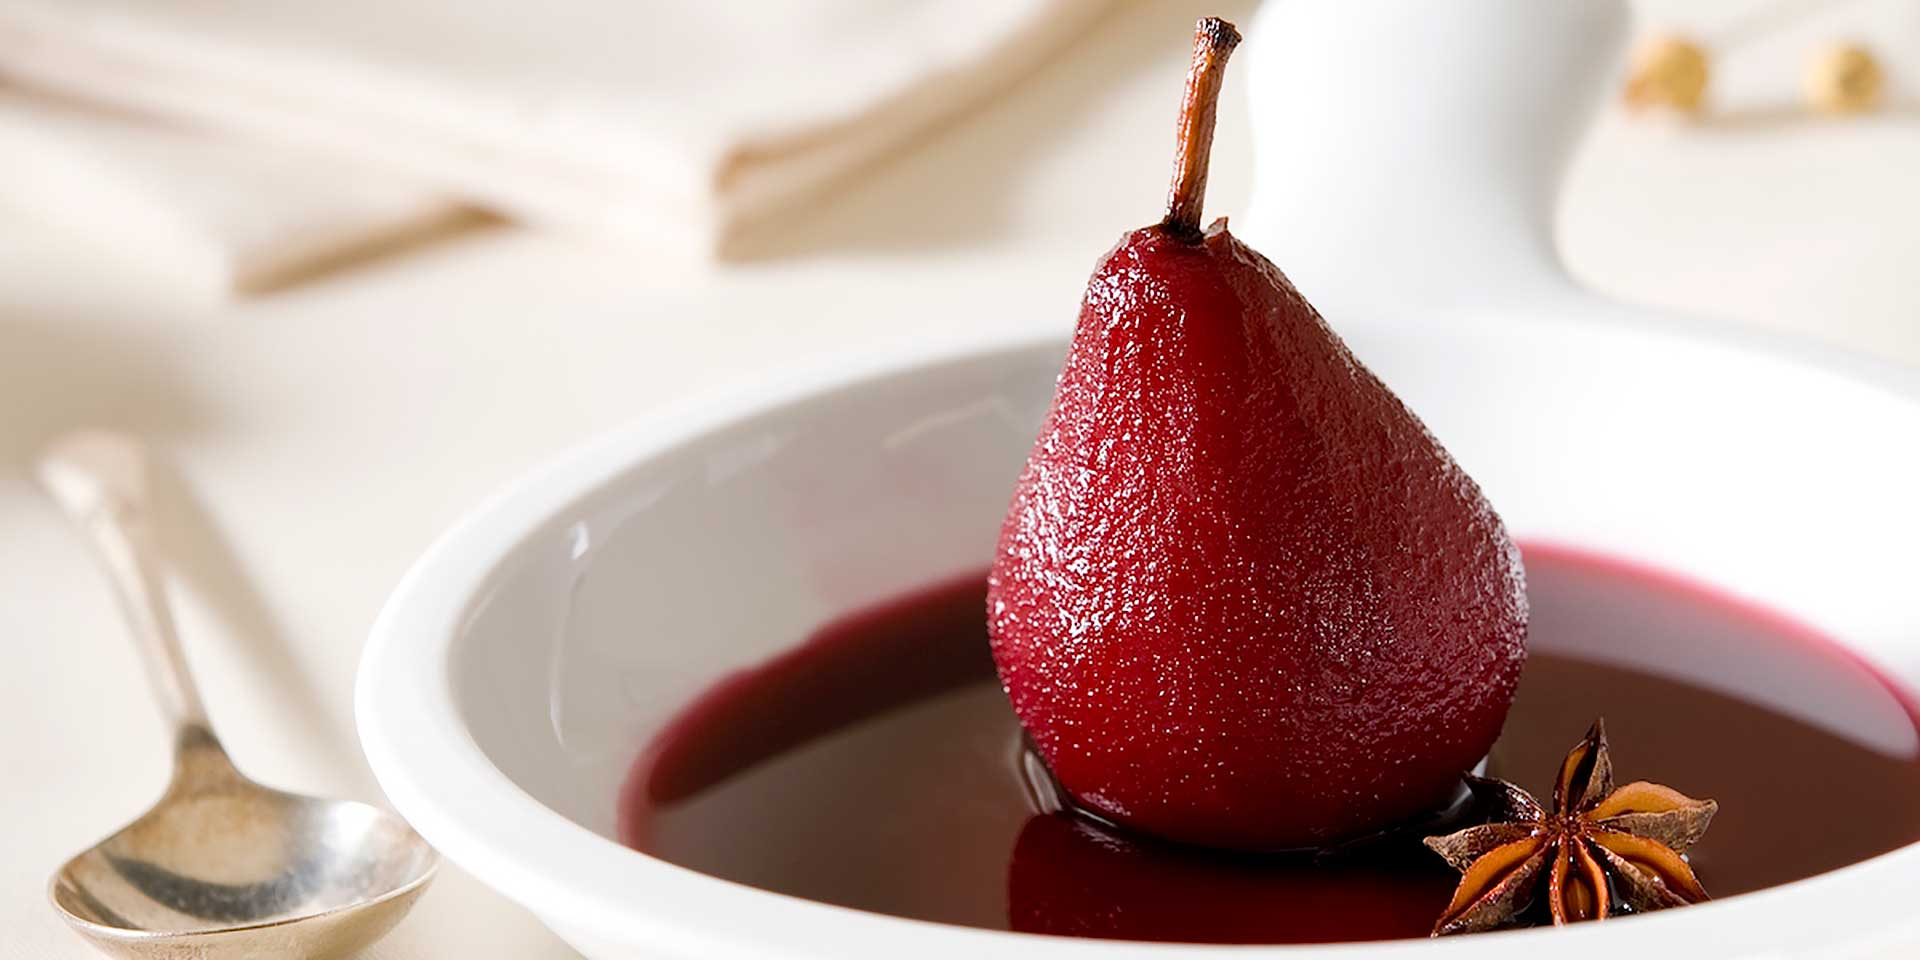 Orange and Star Anise Scented Poached Pears